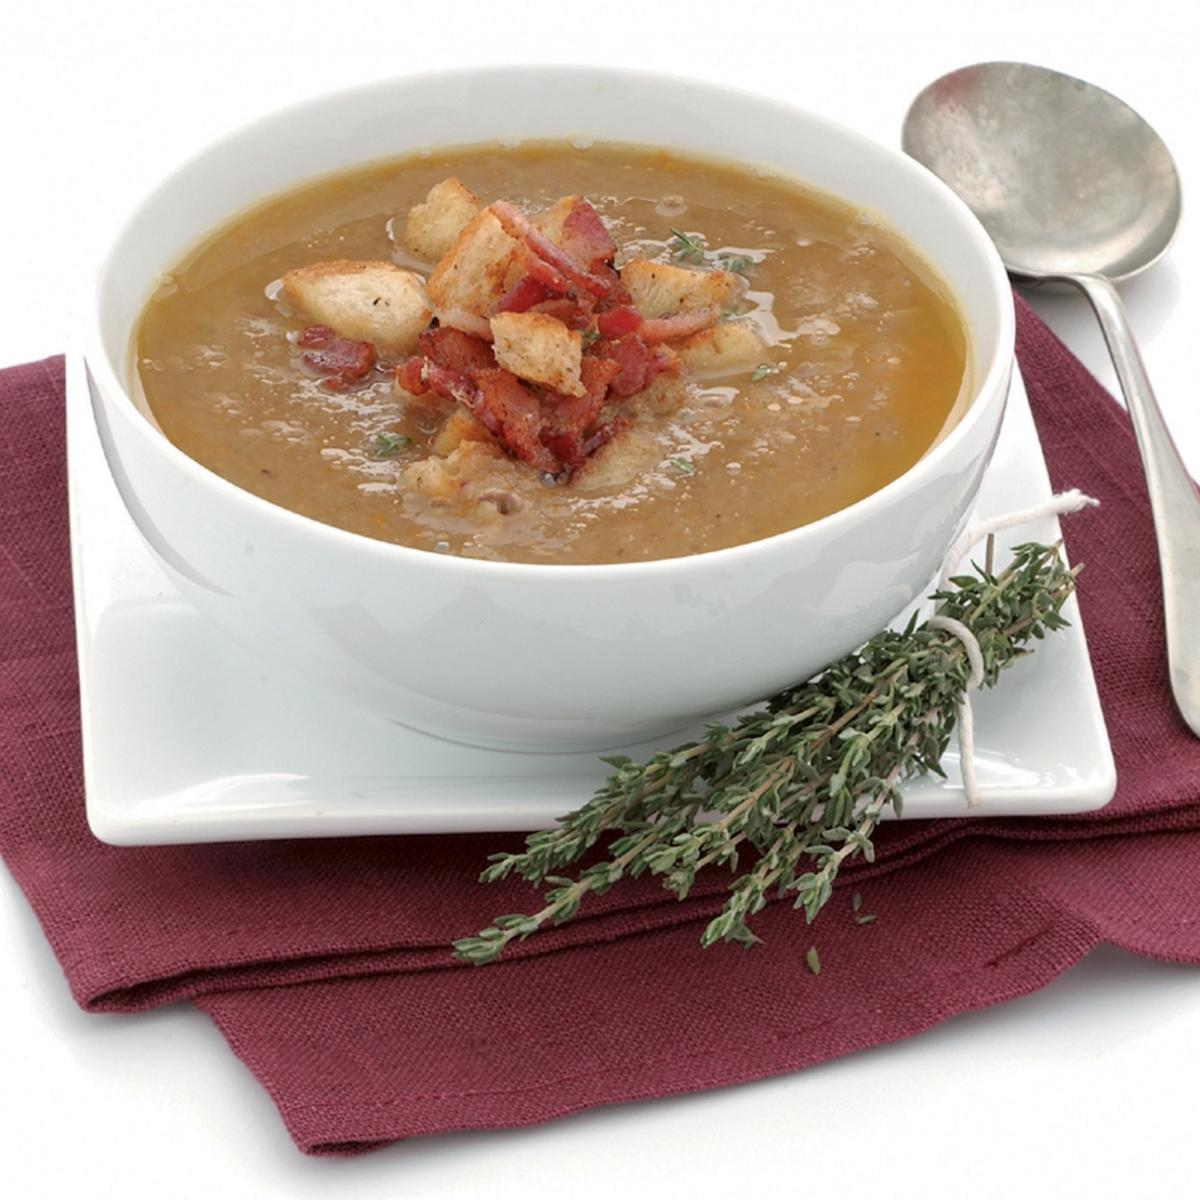 Soup chestnut soup with bacon and thyme croutons